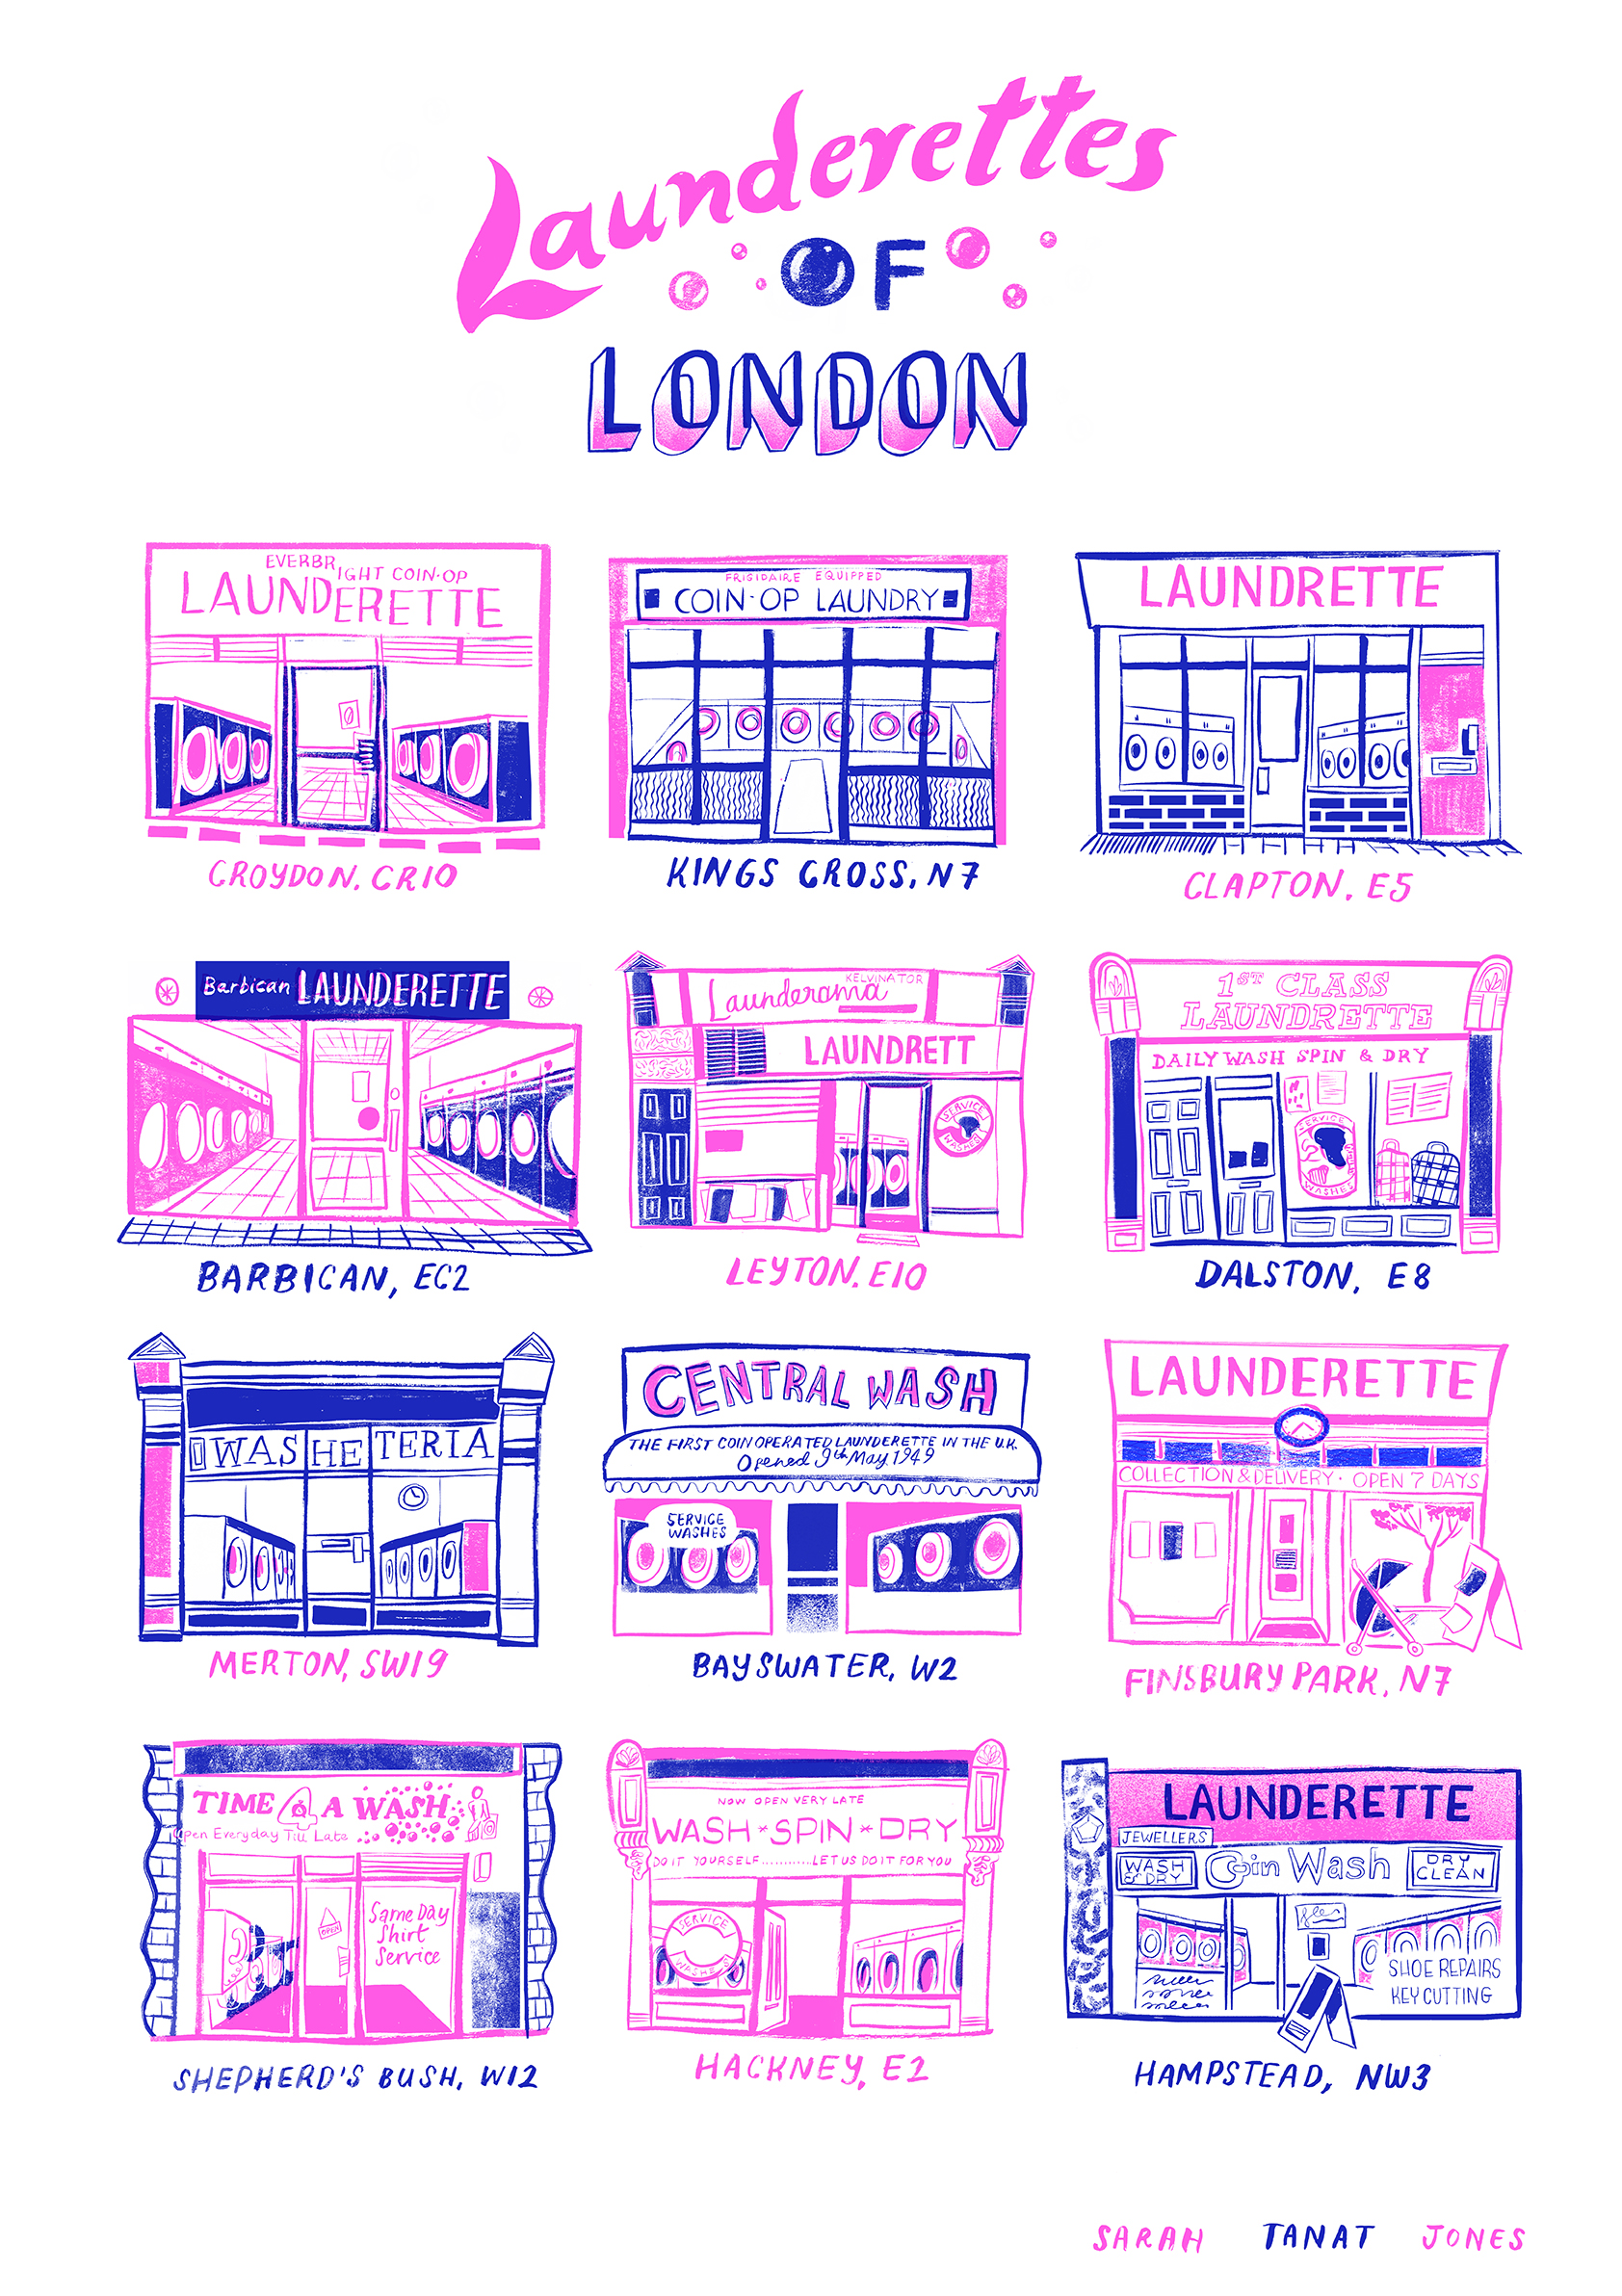 London Shops Launderettes 18-web.jpg